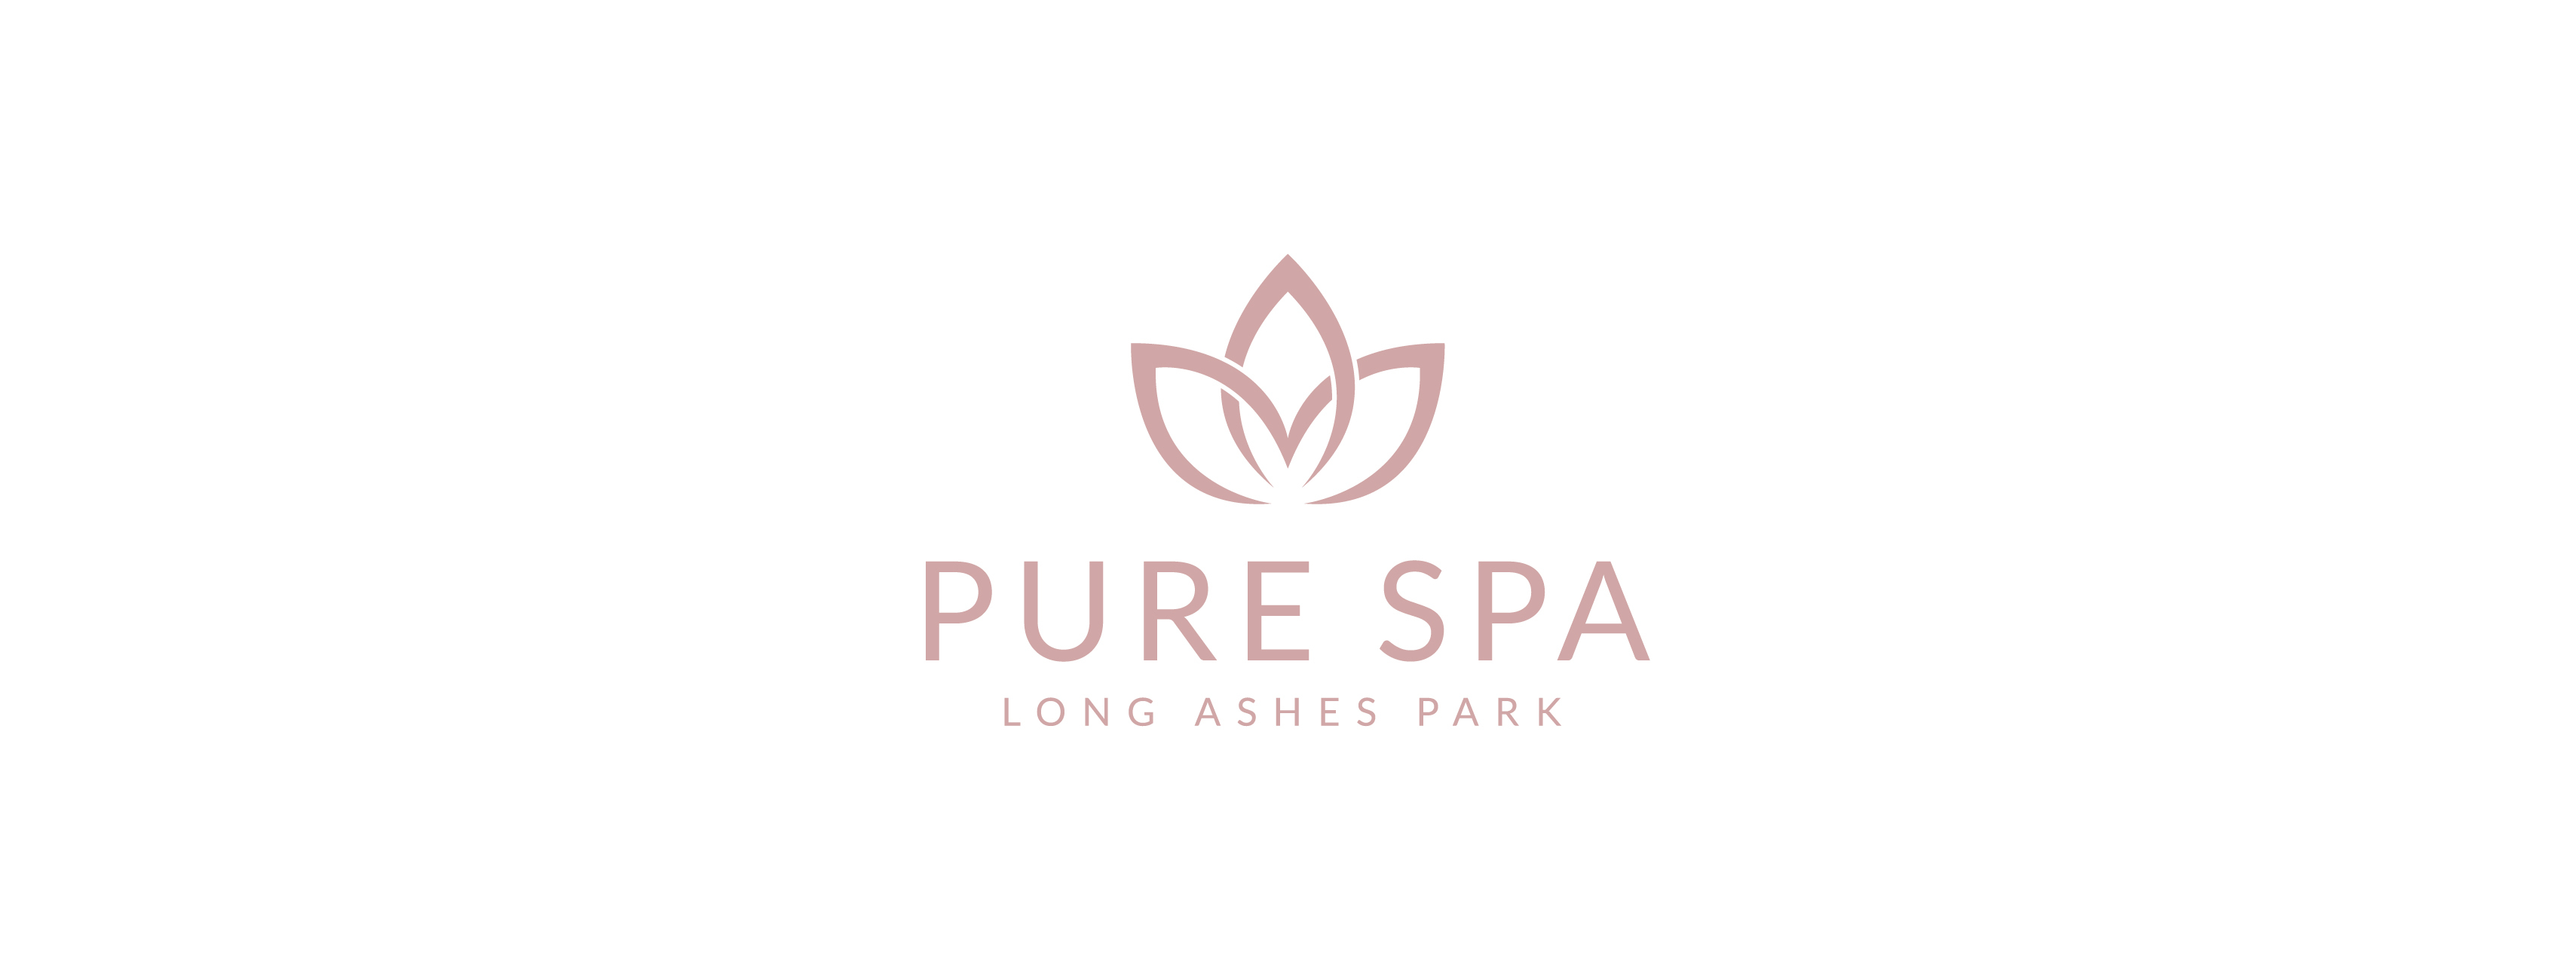 Long Ashes Pure Spa, Long Ashes Park